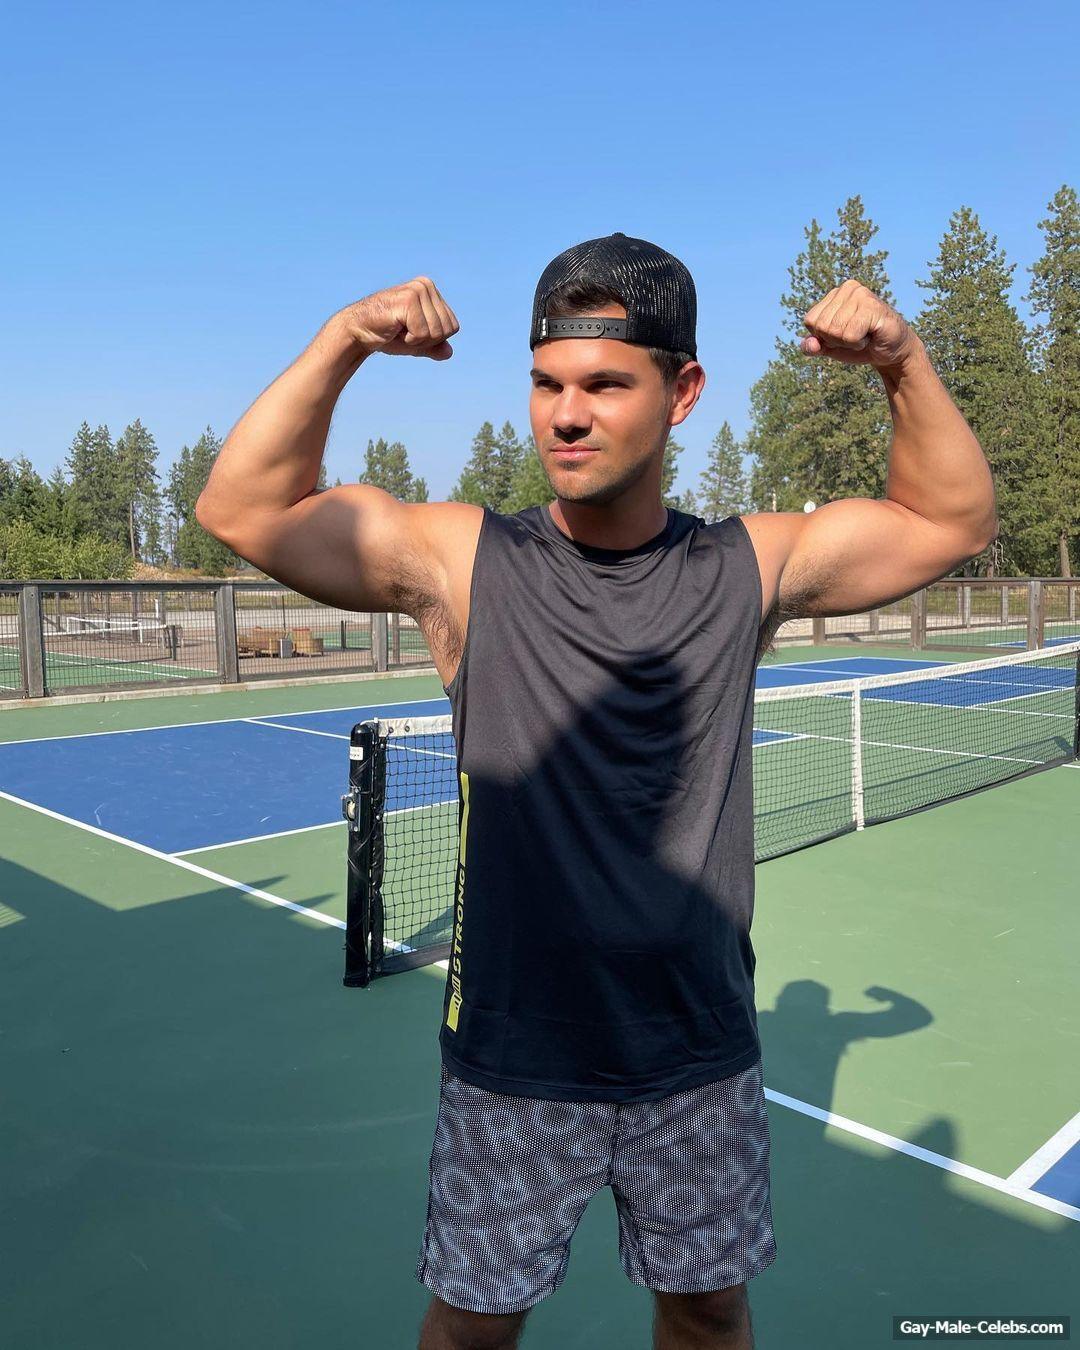 Taylor Lautner Shows His Round Ass And Hairy Armpits